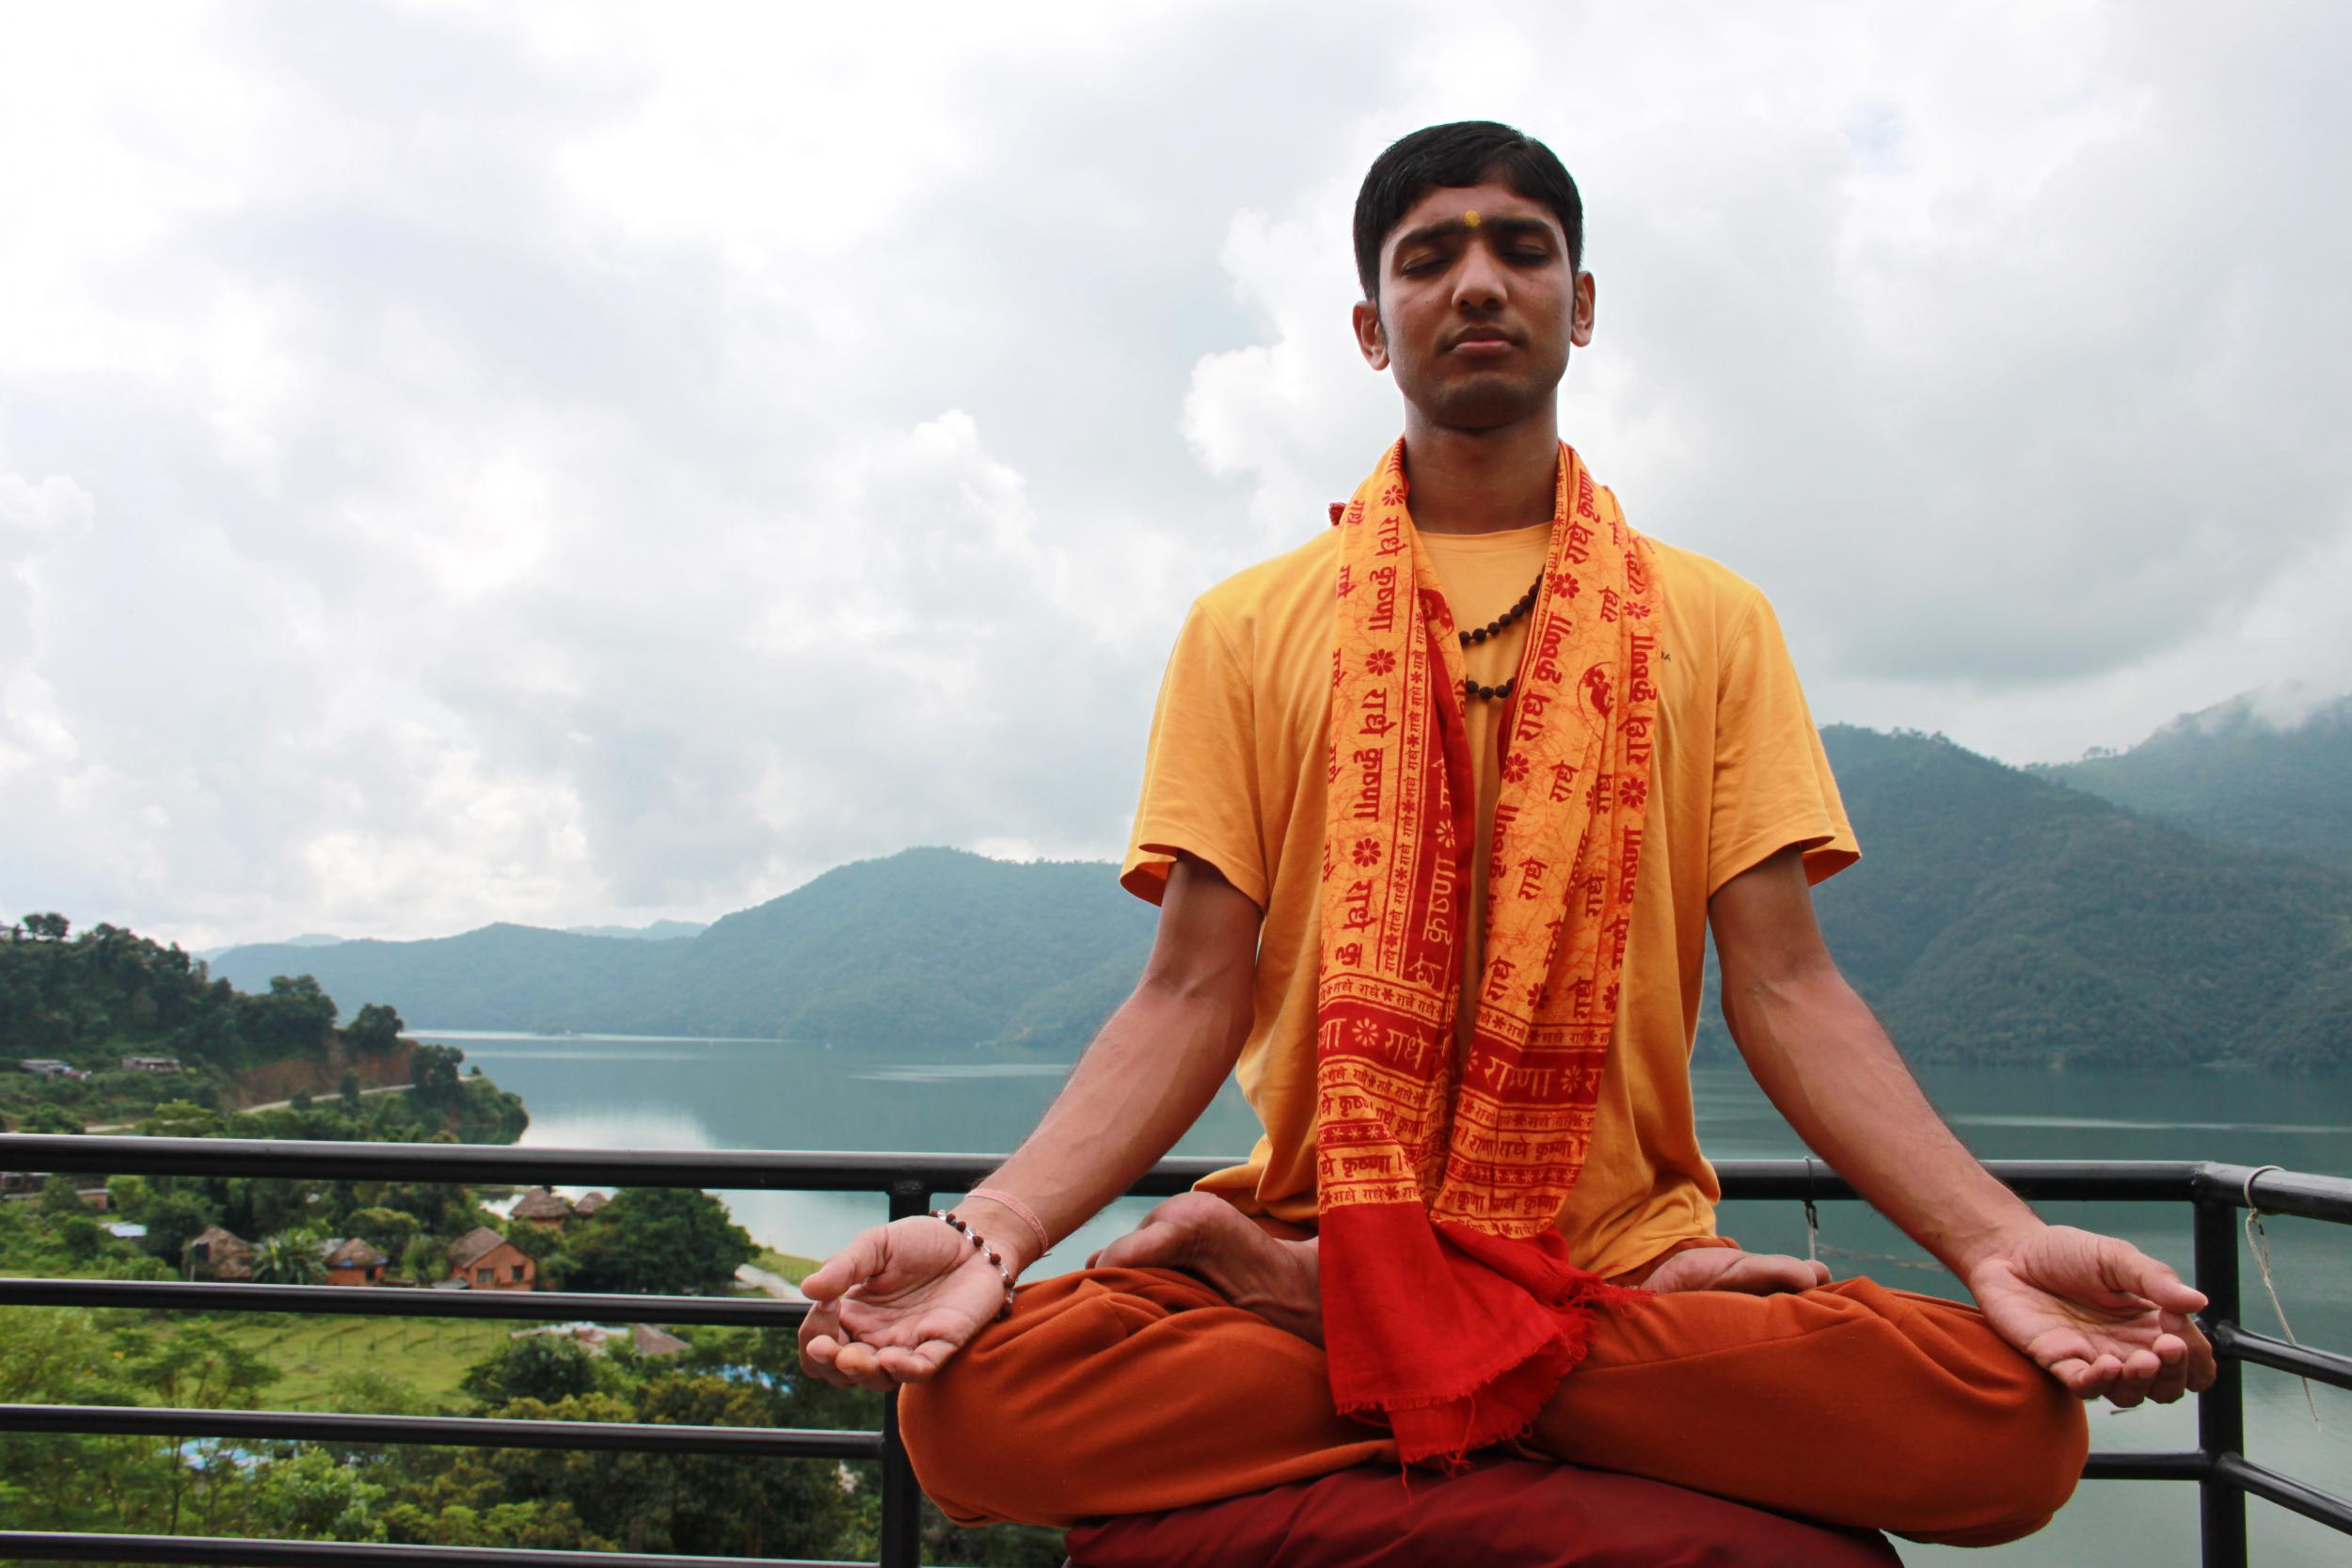 Nepal yoga retreats: Are spiritual holidays a load of nonsense?